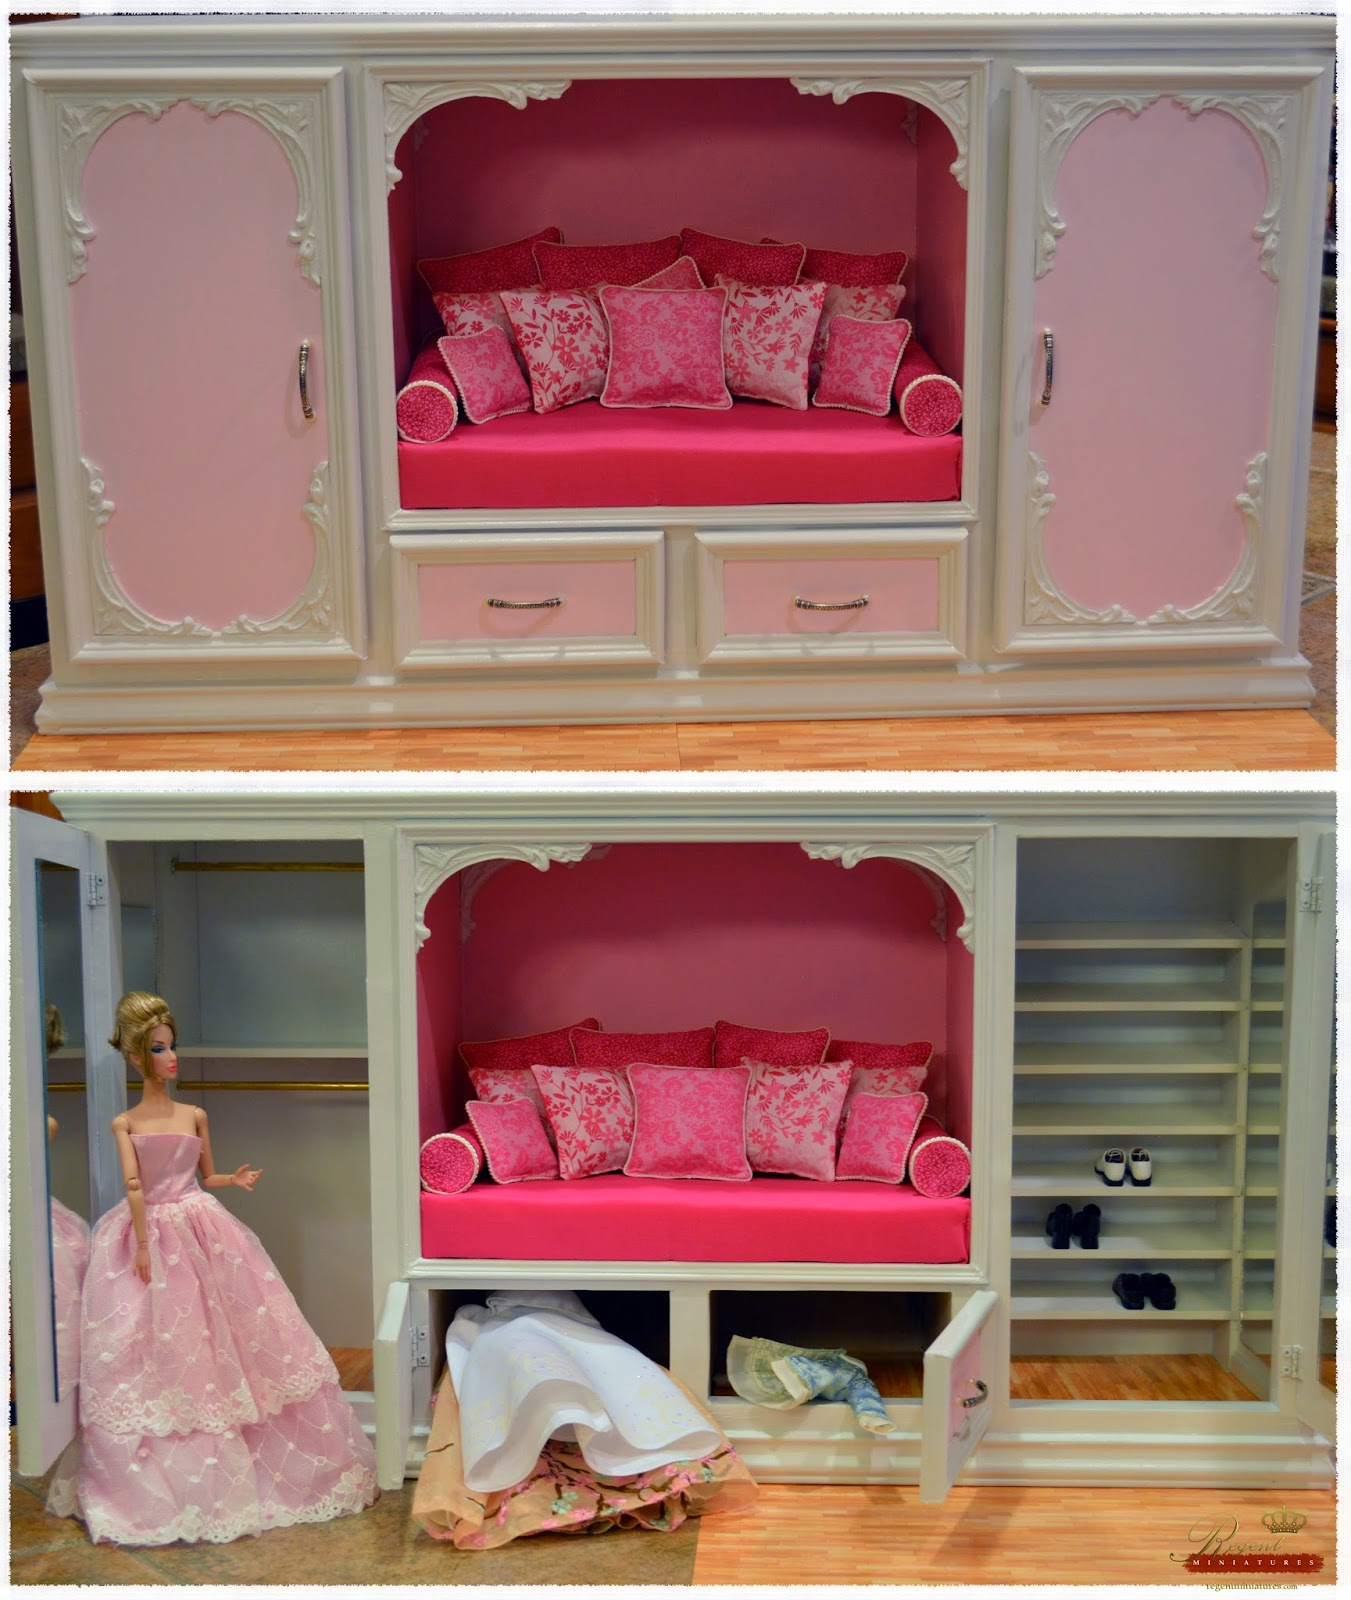 Dream Closet For Barbie, Fashion Royalty Or Hot Toy Figure!